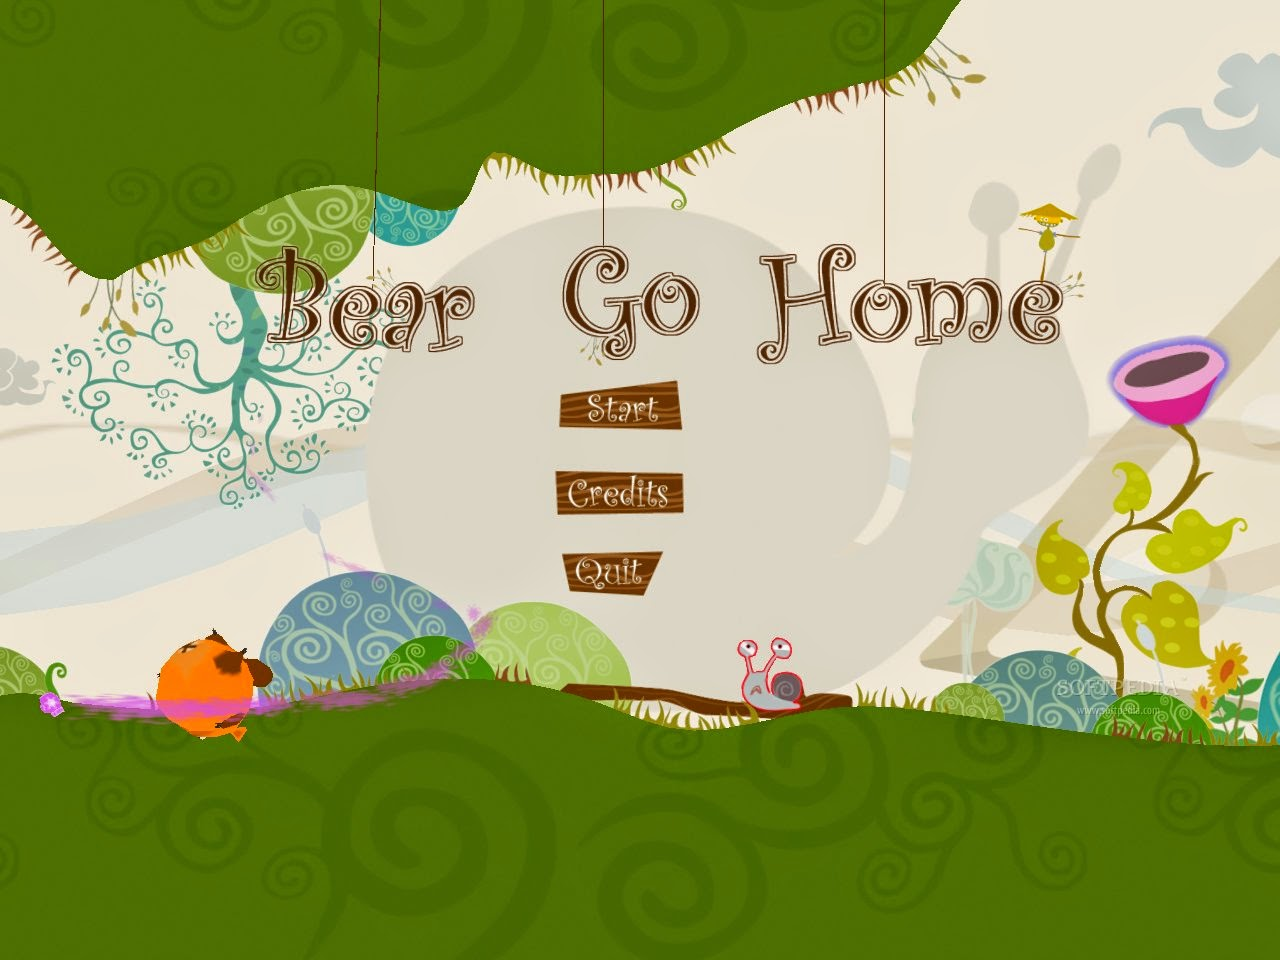 Game Anak - Anak Bear Go Home